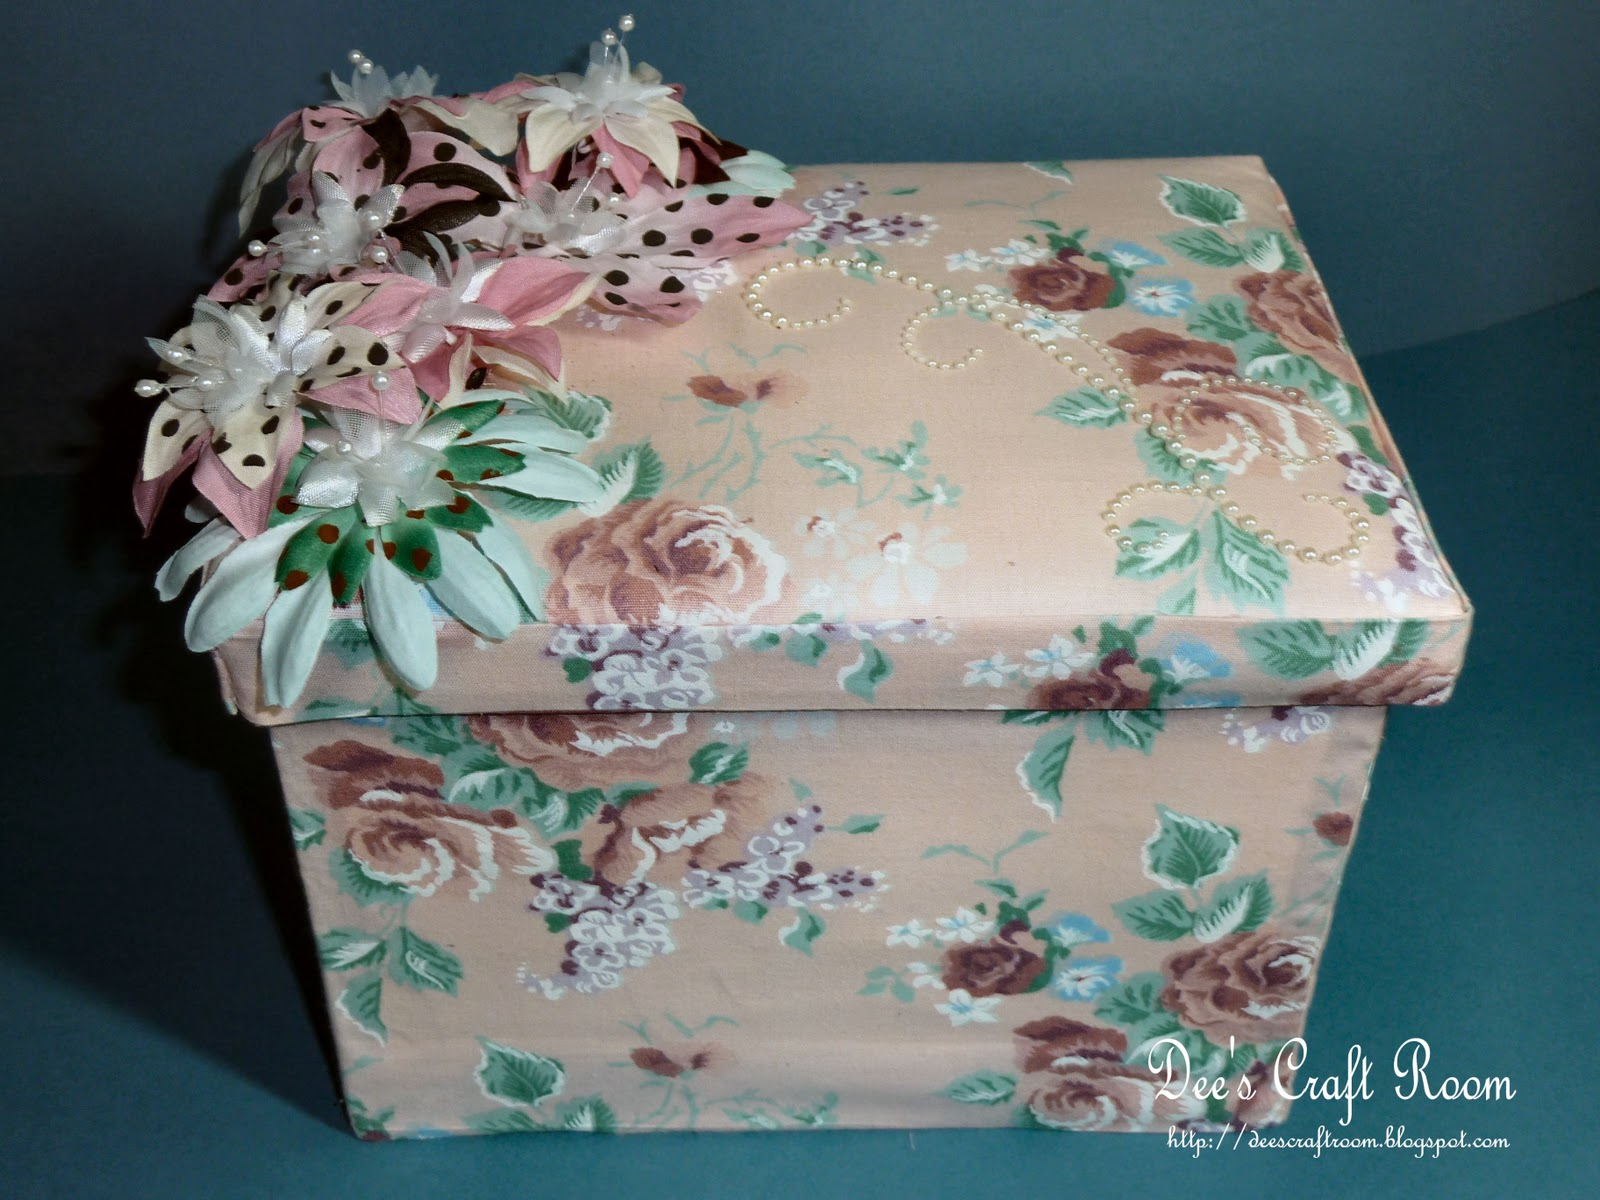 Dee S Craft Room Off The Page Hand Made Fabric Covered Box